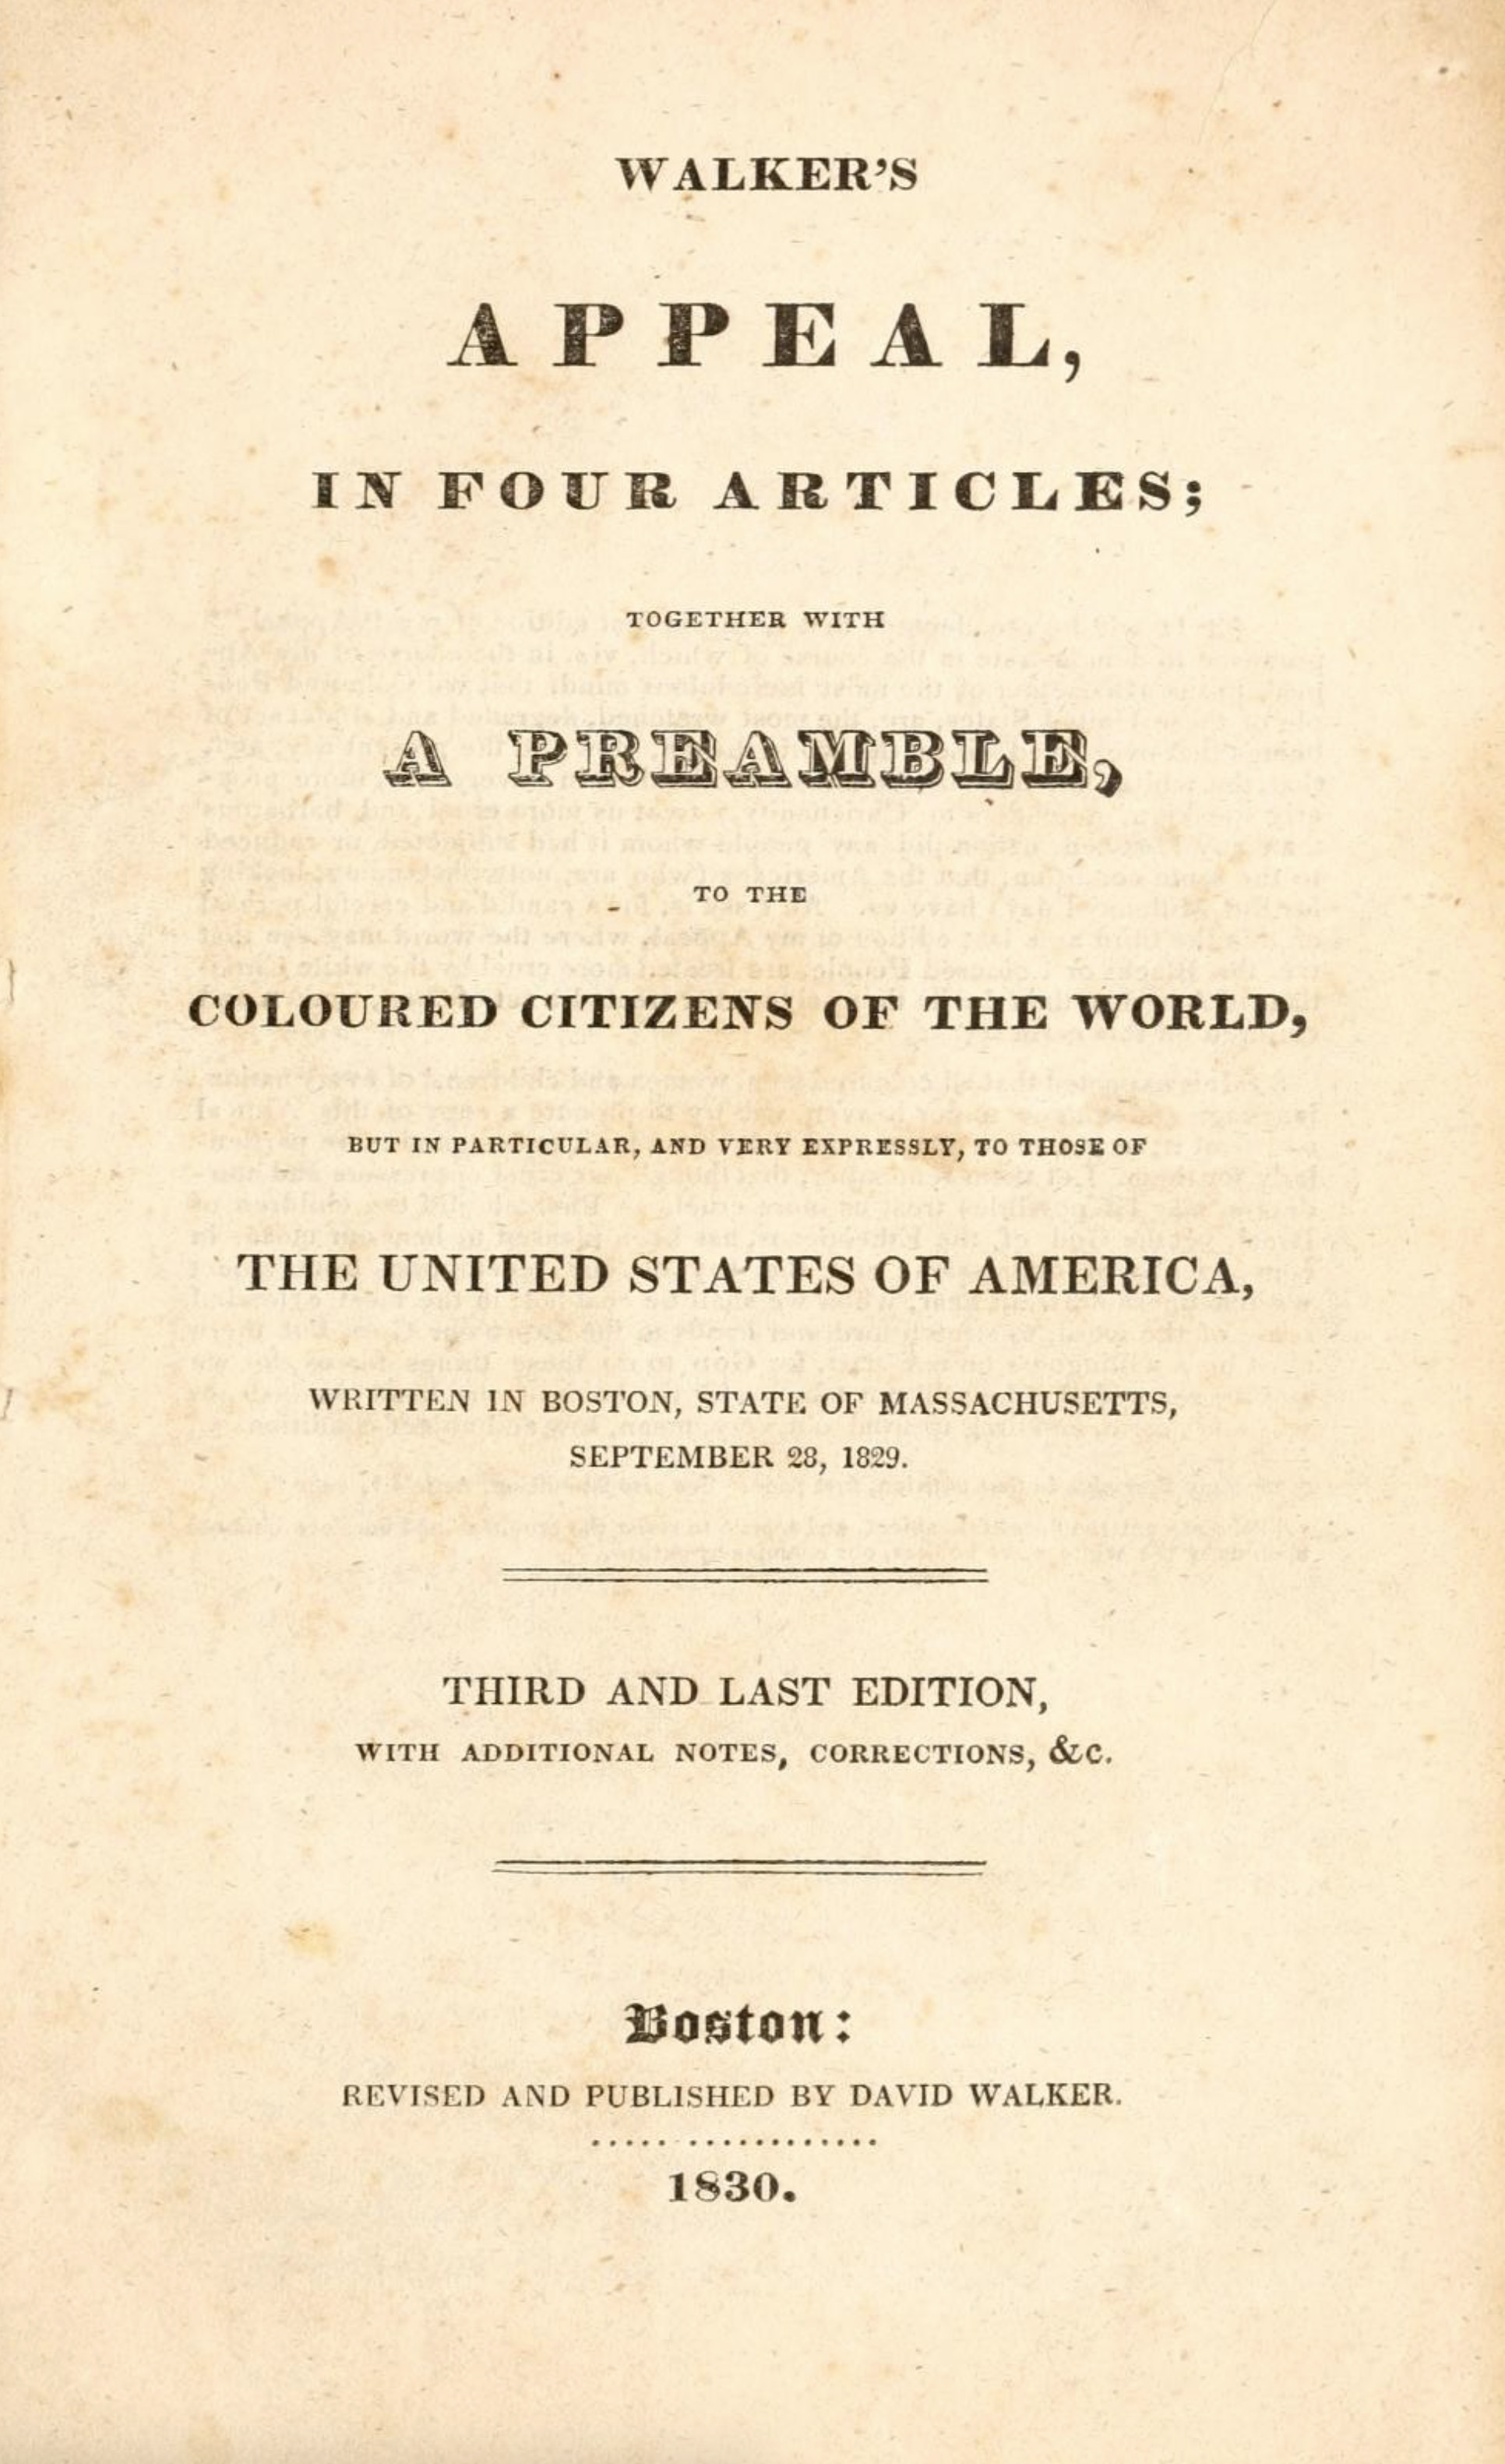 Walker's Appeal, in Four Articles, 1830